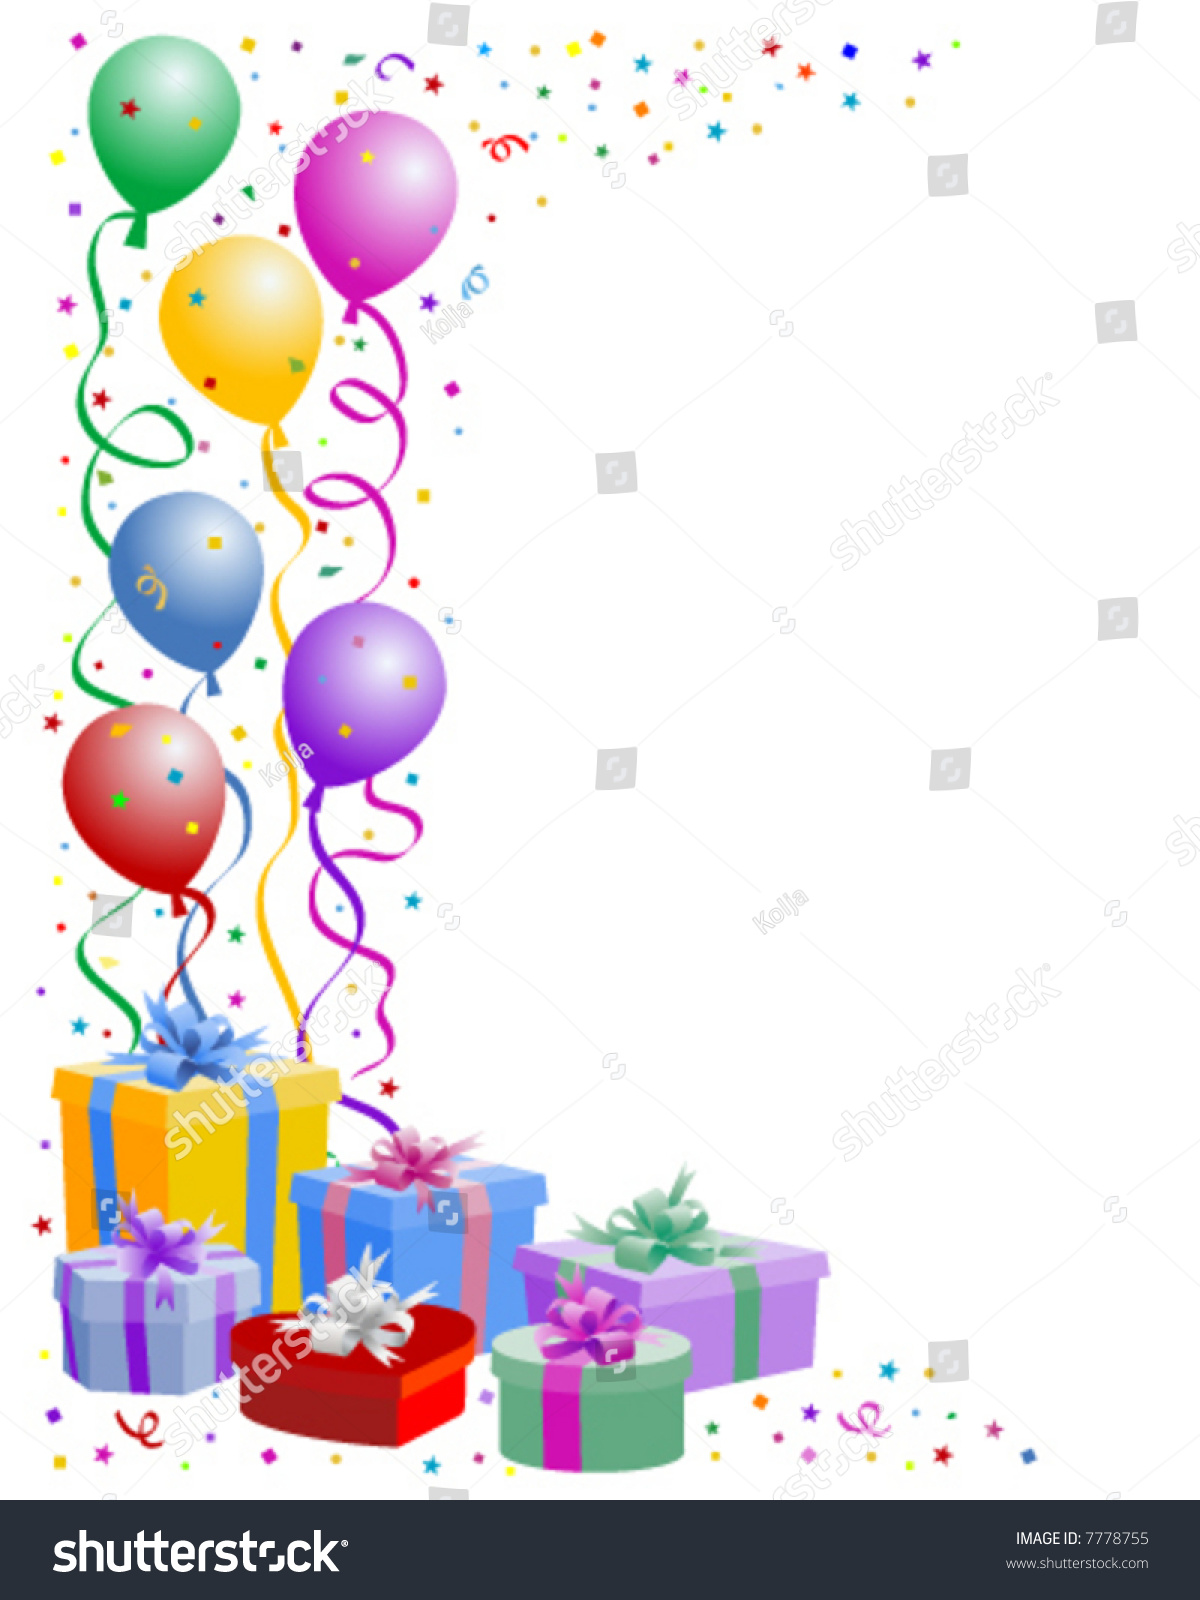 Birthday Balloons With Gifts Boxes